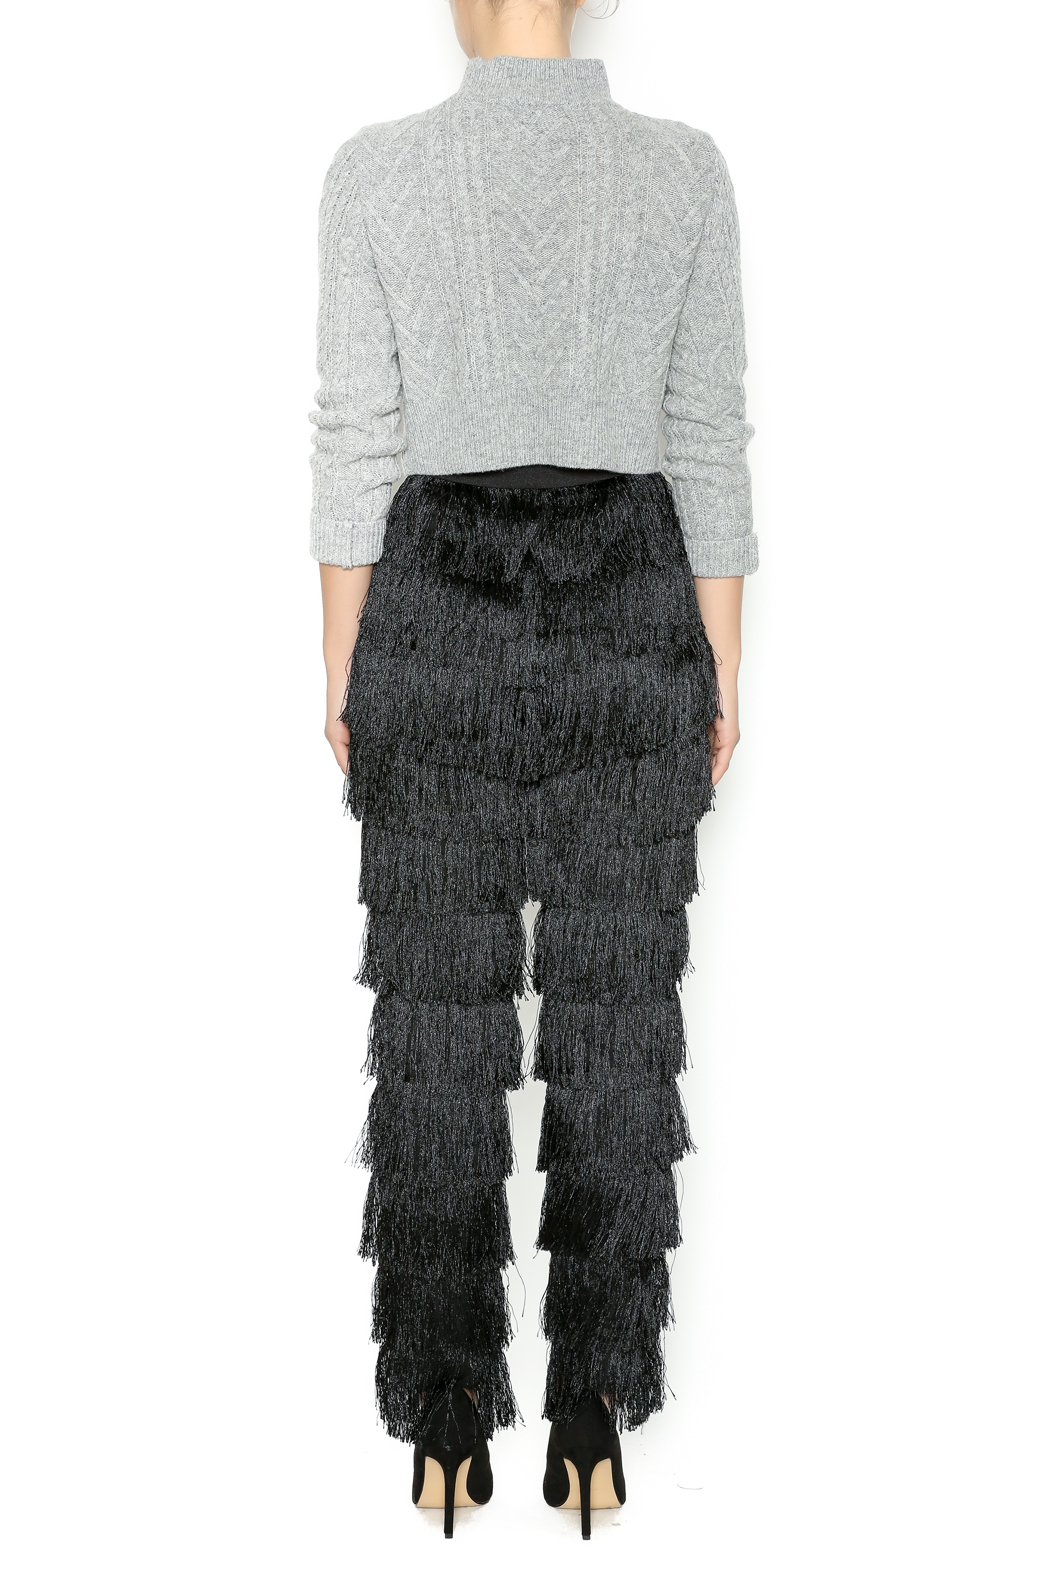 Online shopping for popular & hot Fringe Pants from Women's Clothing & Accessories, Pants & Capris, Jeans, Leggings and more related Fringe Pants like pants fringes, fringed pants, pants fringed, fringe shorts. Discover over of the best Selection Fringe Pants on funon.ml Besides, various selected Fringe Pants brands are prepared for you to choose.